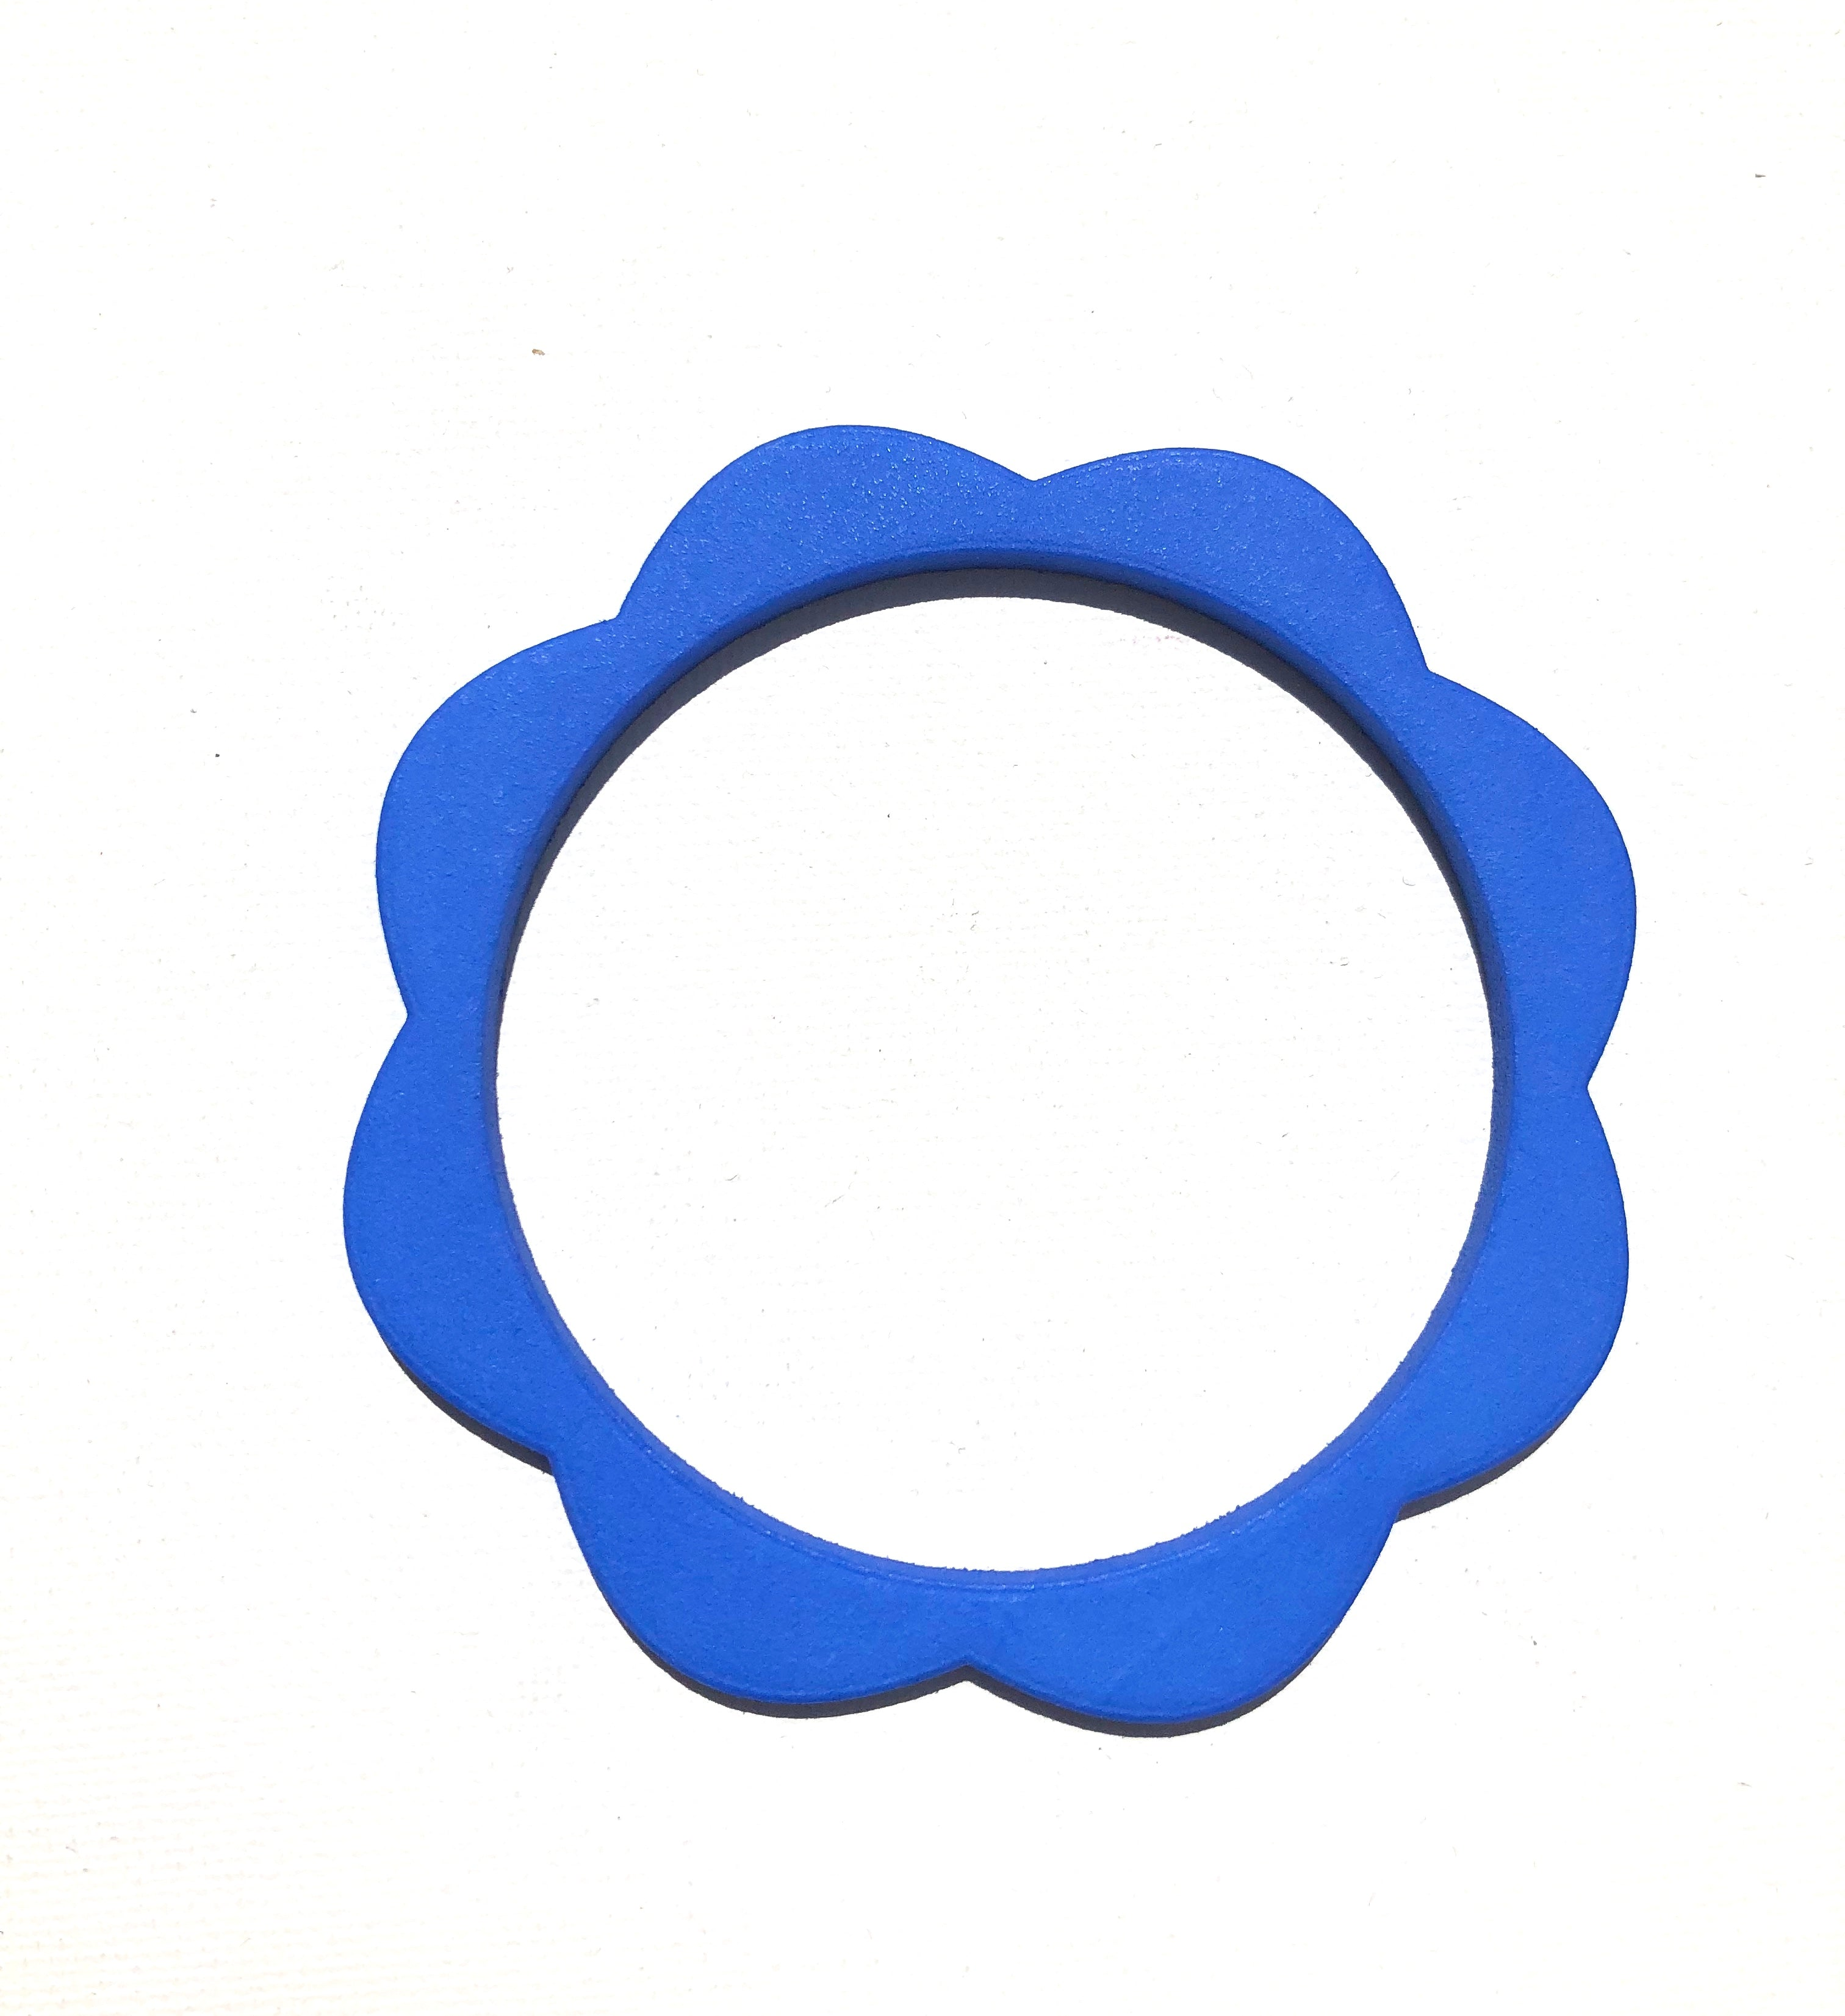 FLOWER POWER 3D Printed Bangle